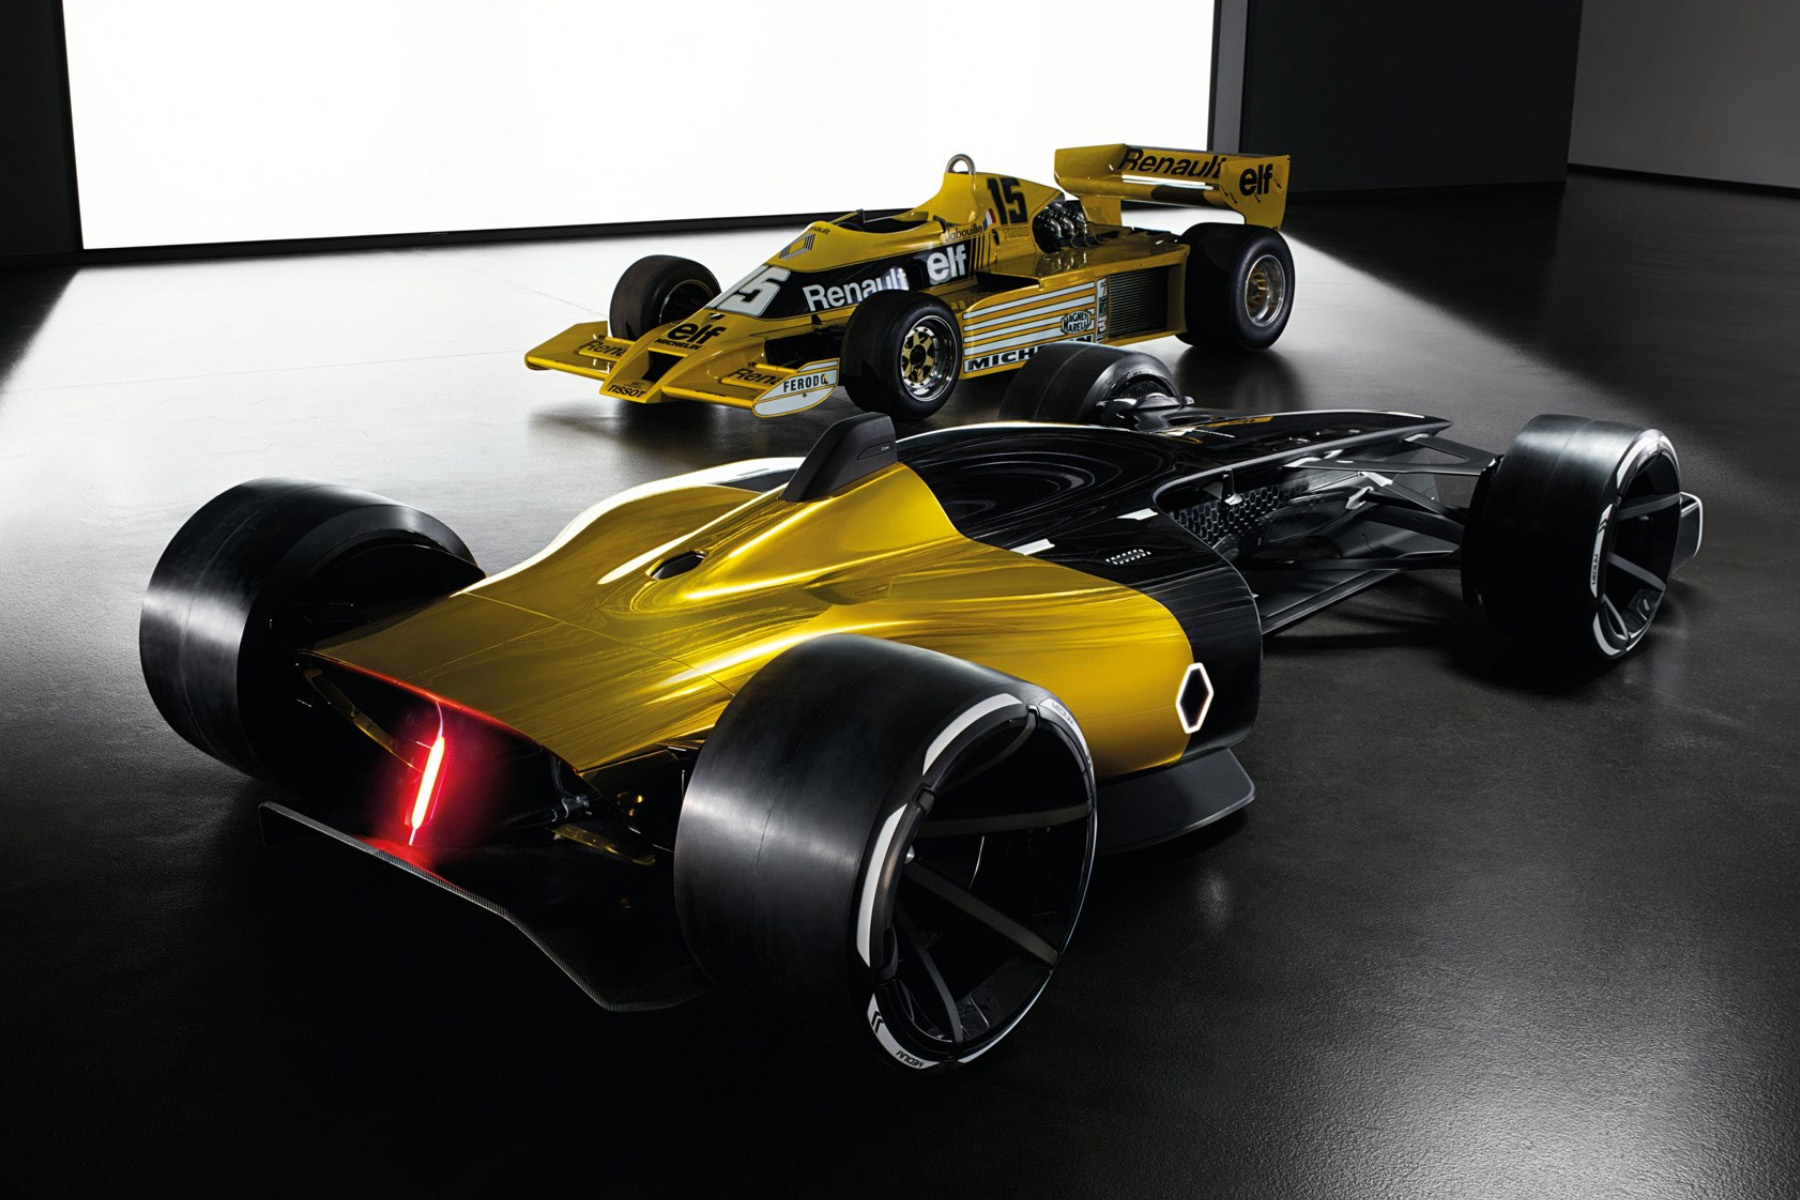 Renault concept makes a bid for F1 future